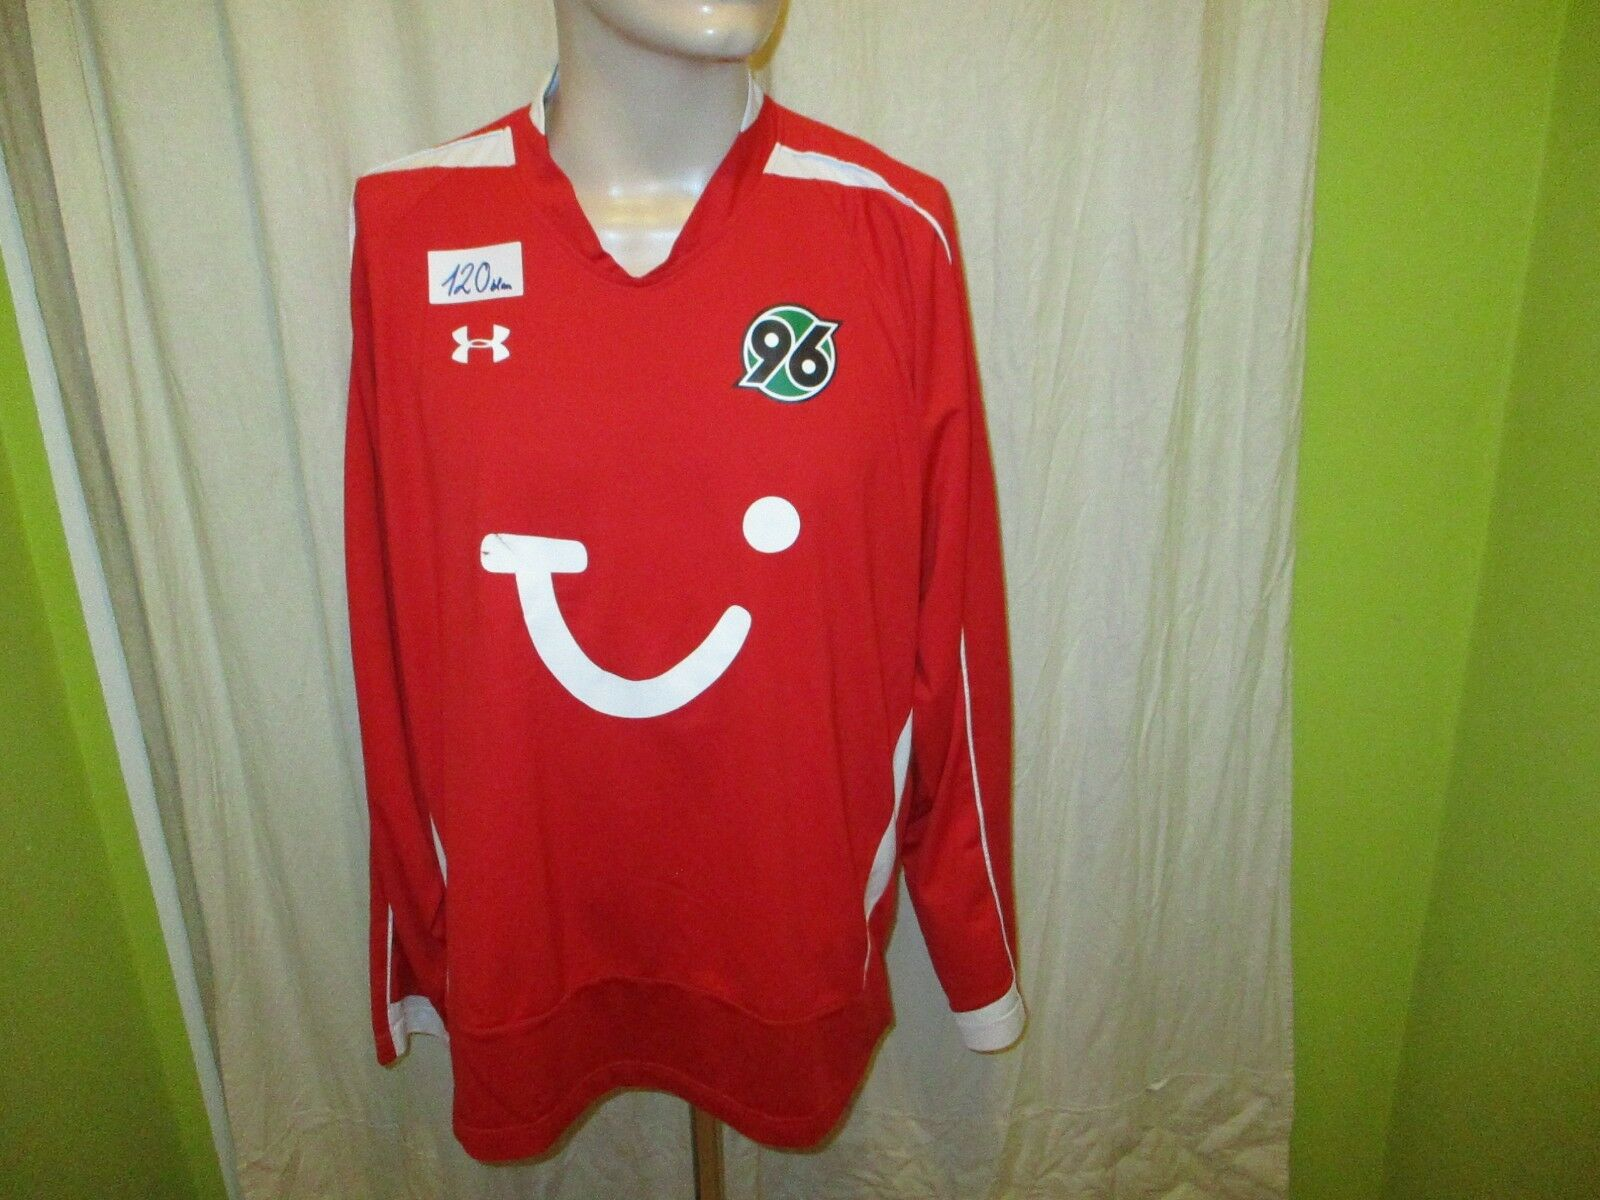 Hannover 96 Under Armour Langarm Junioren Matchworn Matchworn Junioren Trikot 2008/09 + Nr.9 Gr.XL 926c69